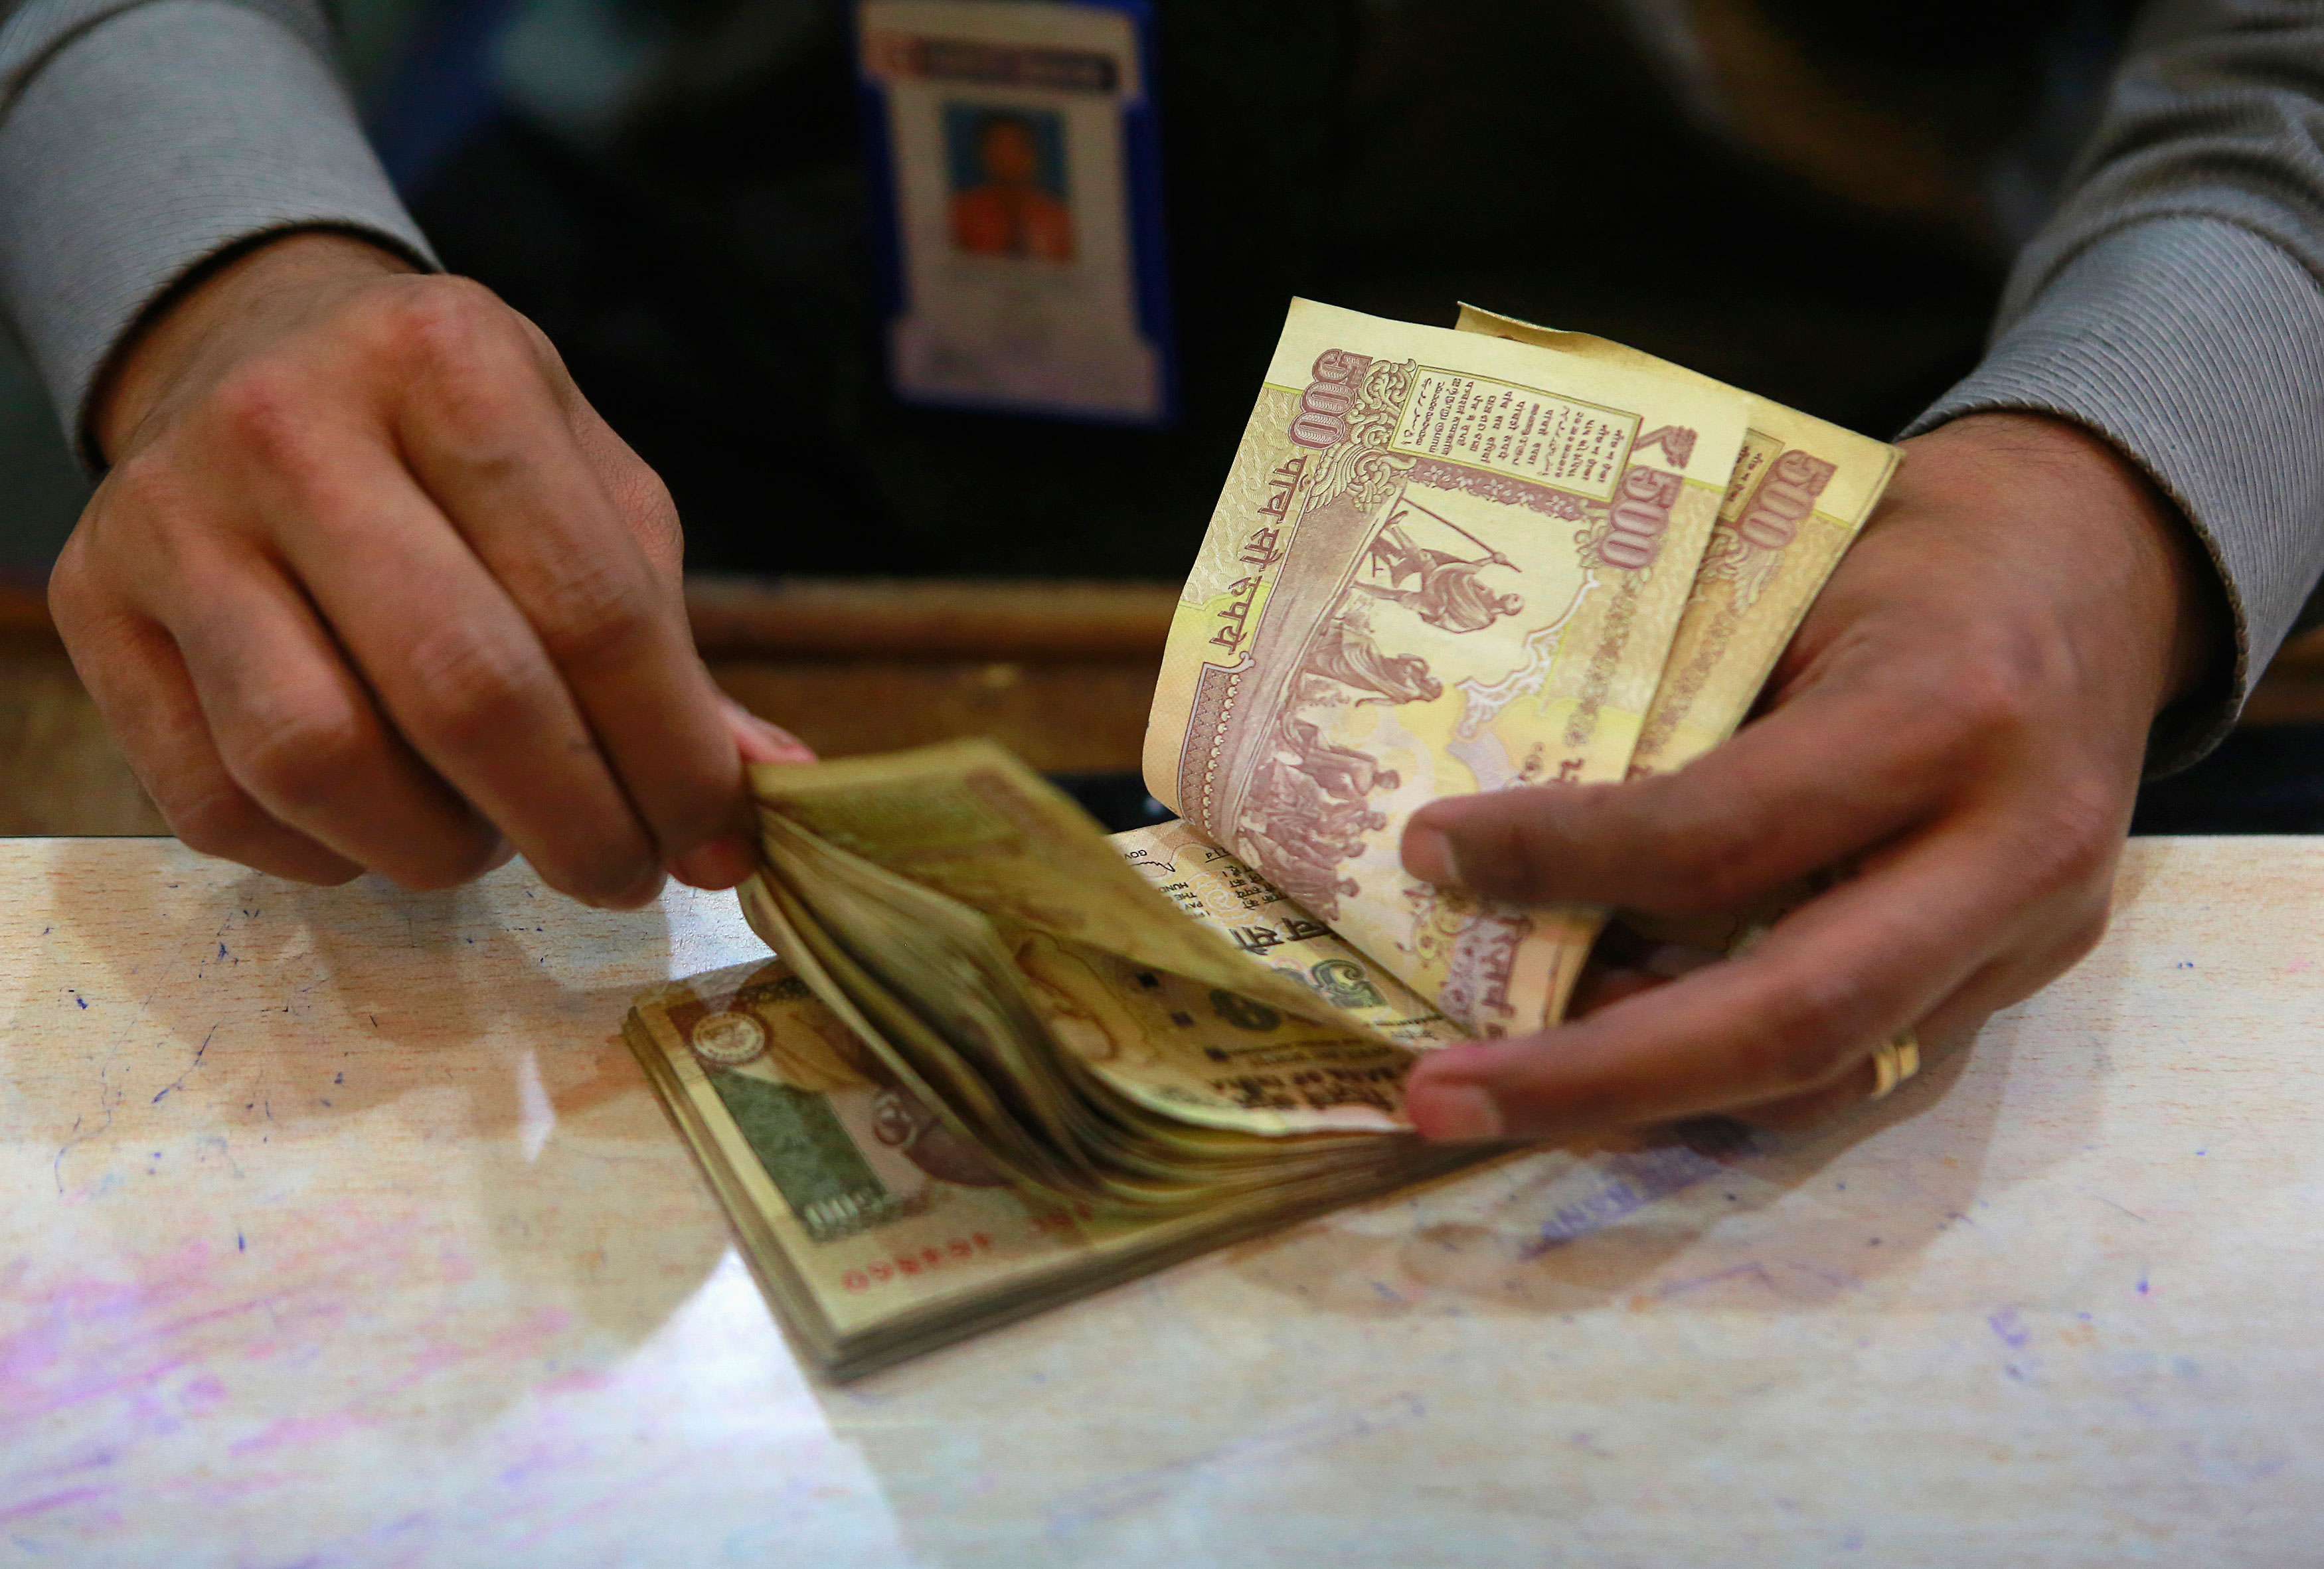 India Inc's overseas borrowings skid again after recovering in FY14